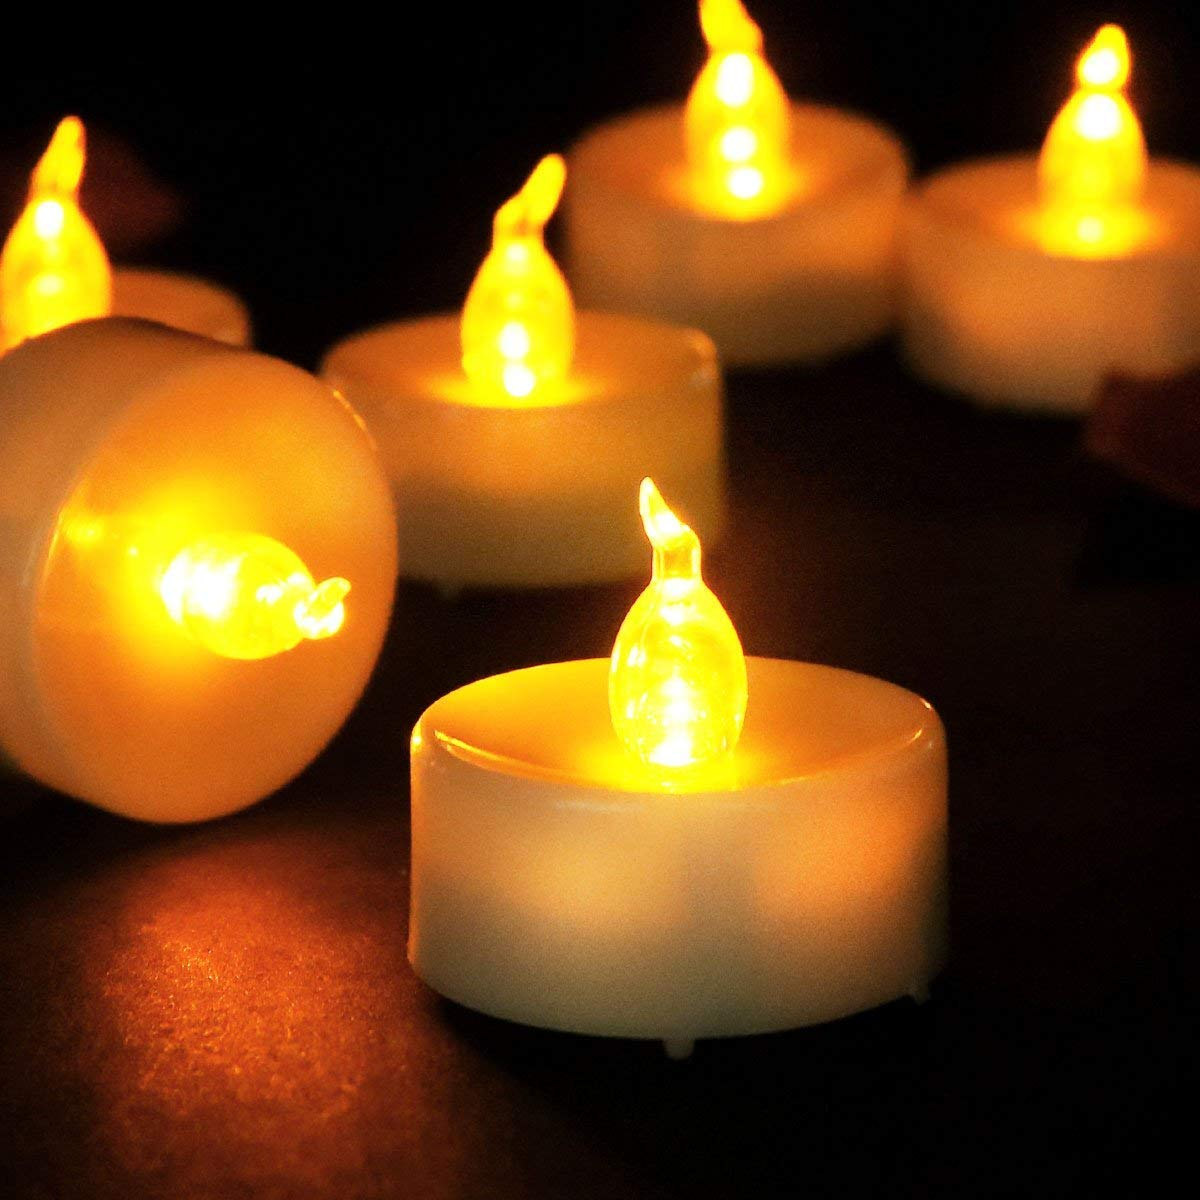 Micandle 12 Pack Remote Candles,Led Flameless Remote Tea Lights for Wedding Party Church Home Decorate,Last up to 48 Hours,Battery Amber Flickering Remote Tealights for Wedding Party by Micandle (Image #6)